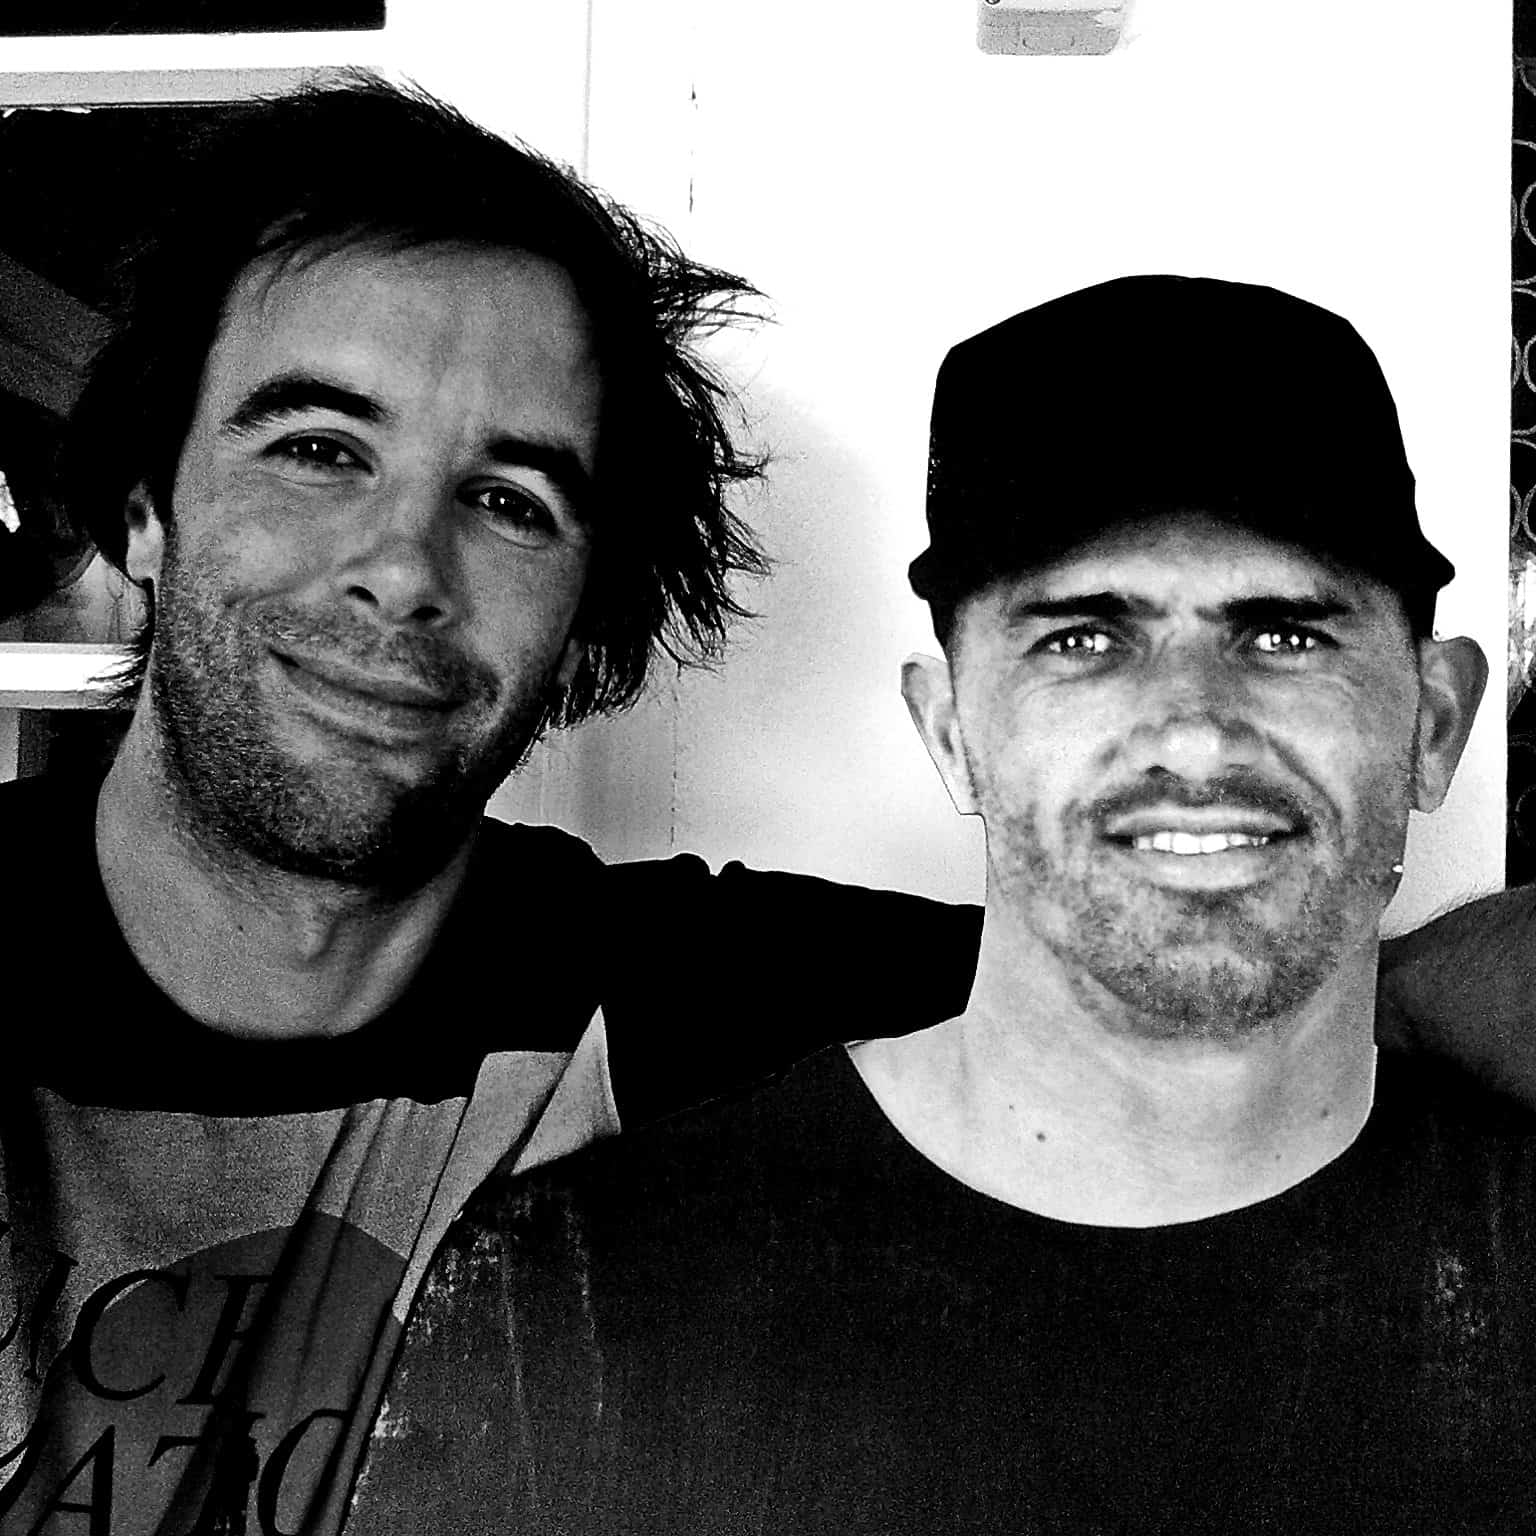 That's me and Kelly Slater. He is a static, thin and made out of paper. Did fool a few people though:).